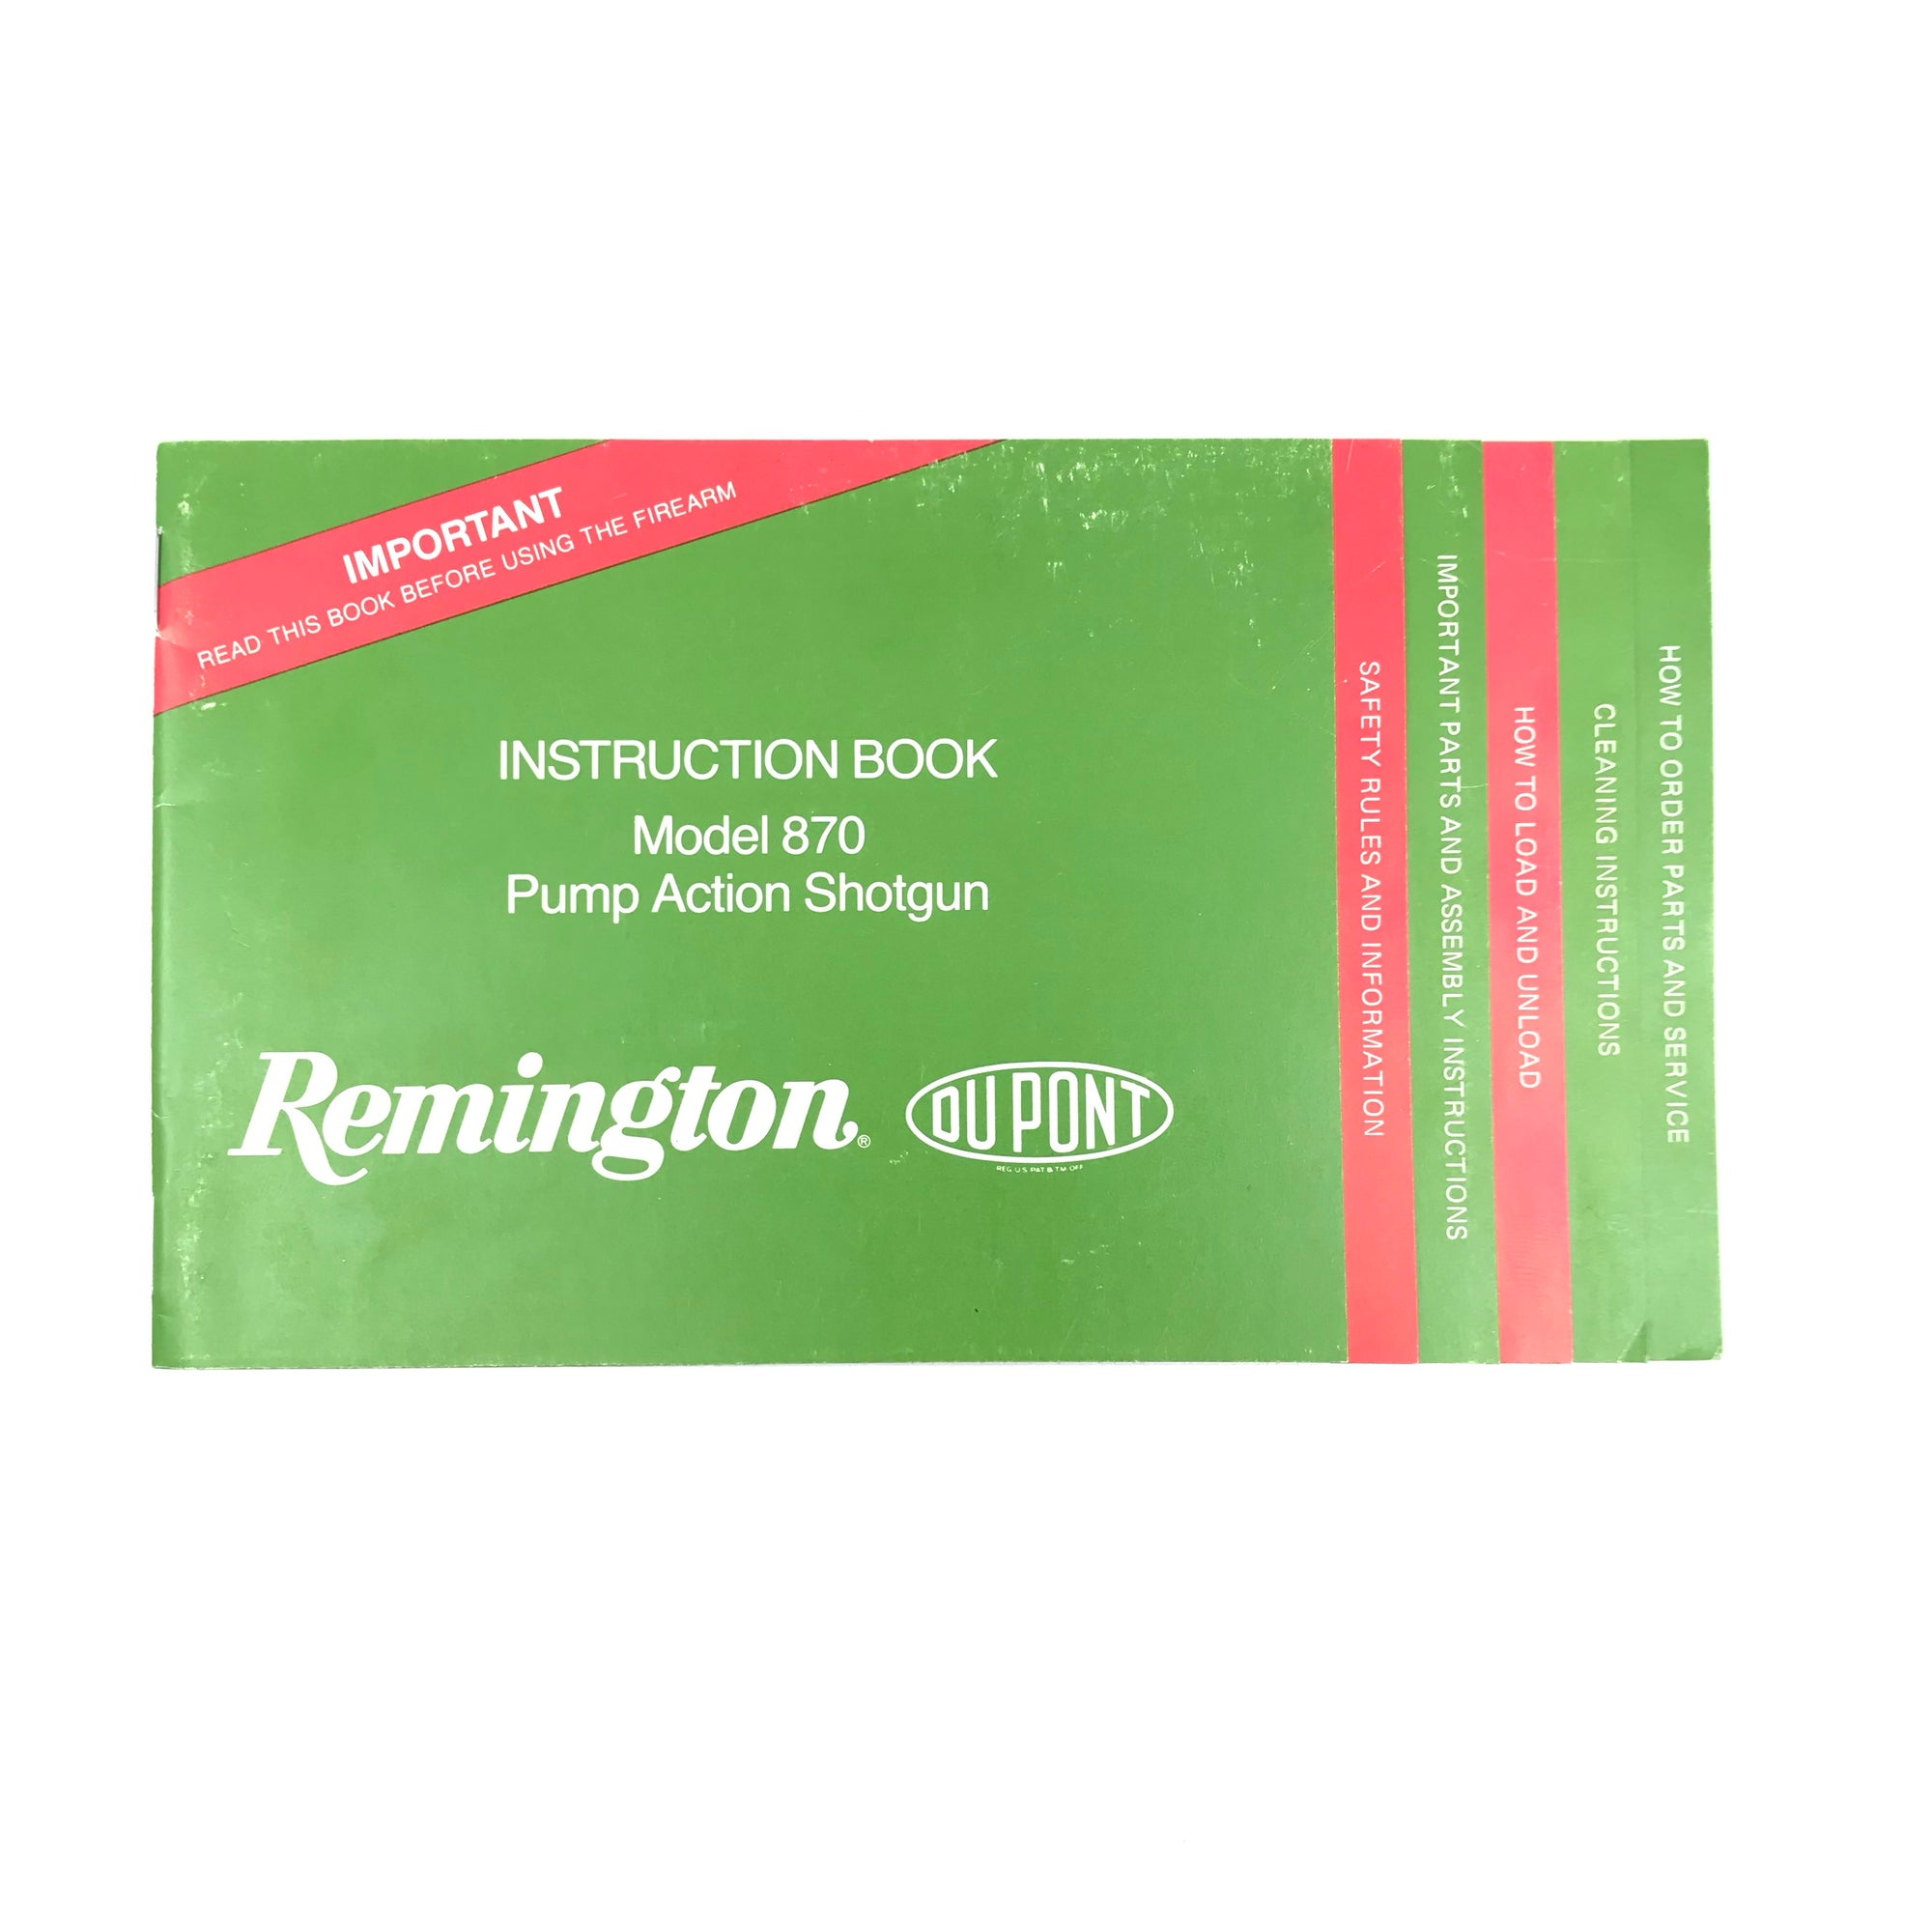 1992 Remington Instruction Book Model 870 Pump Action Shotgun